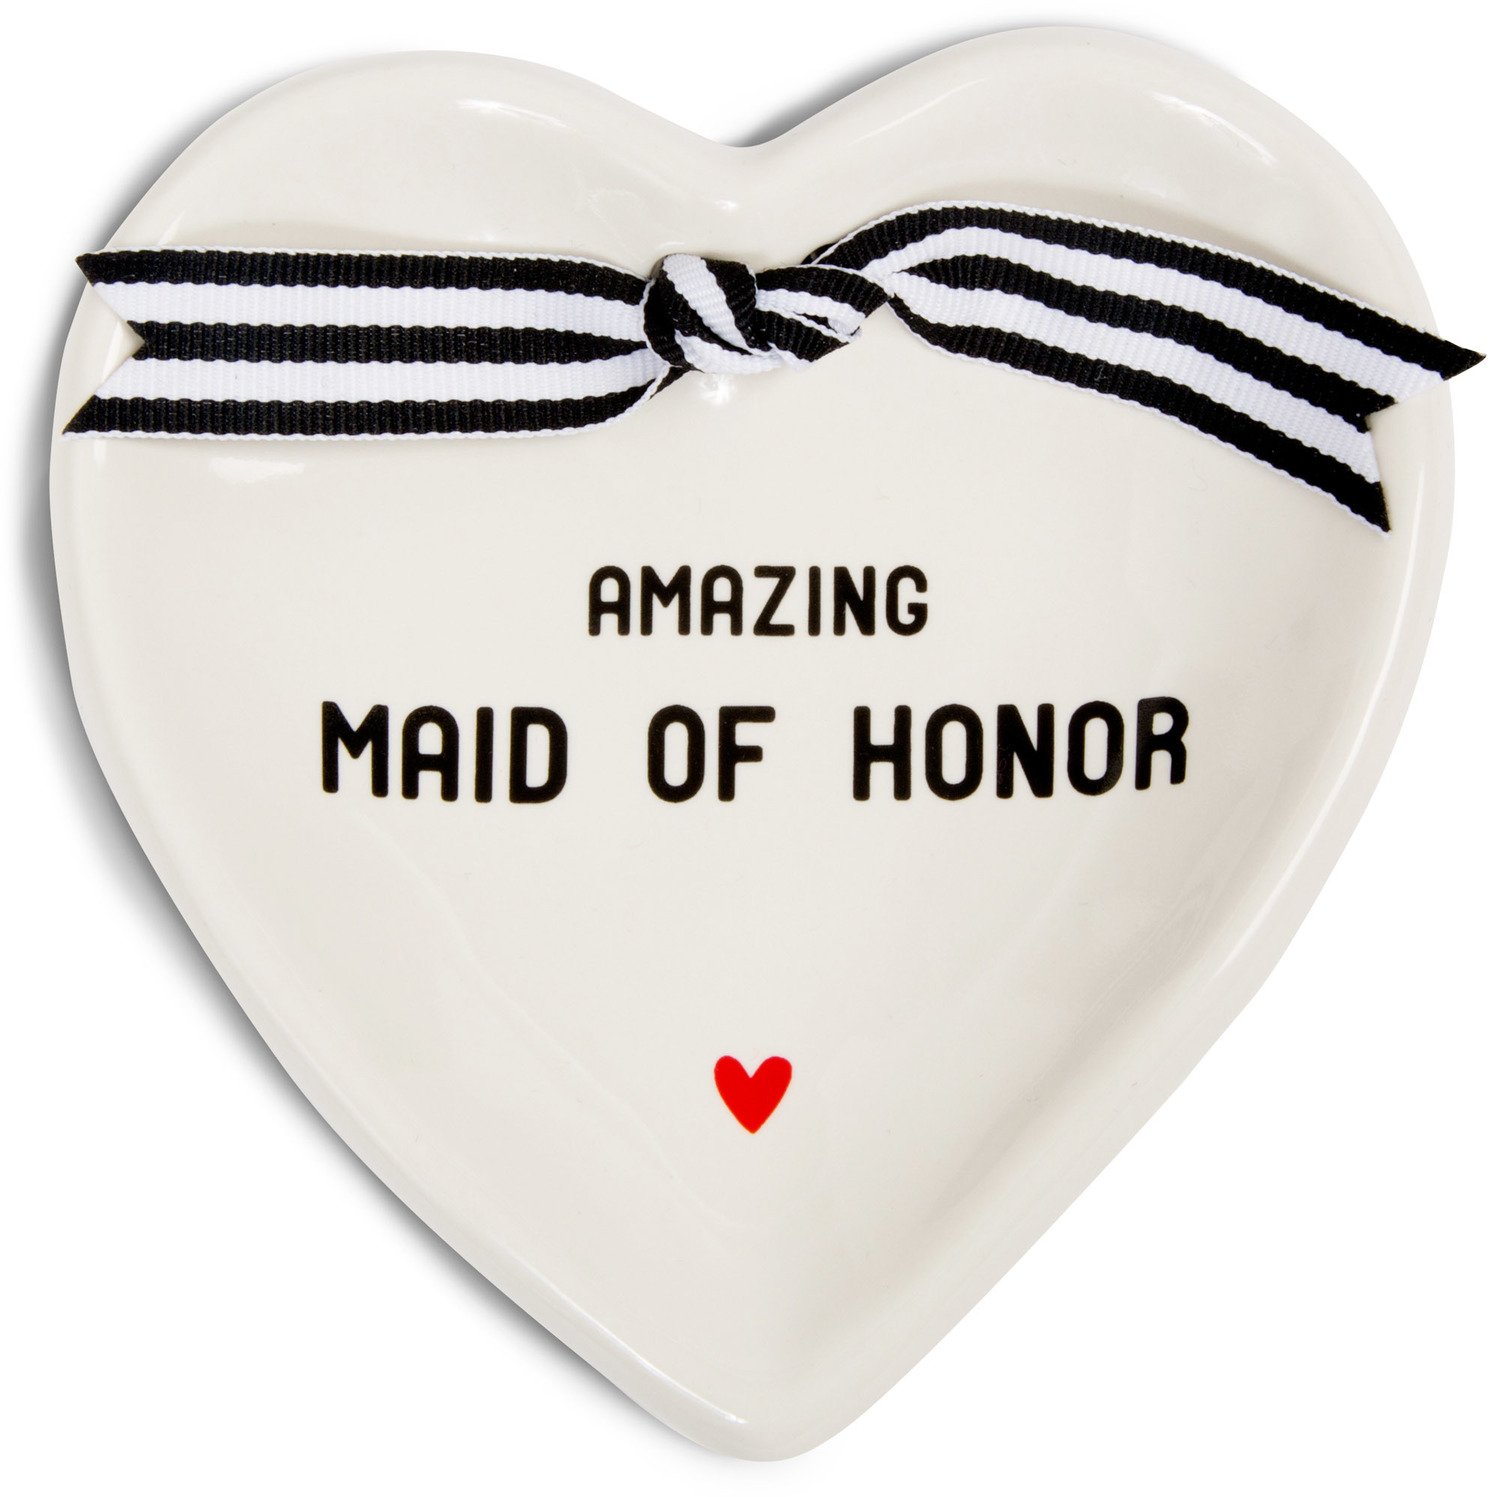 "Maid of Honor by The Milestone Collection - Maid of Honor - 4.5"" x 4.5"" Heart-Shaped Keepsake Dish"